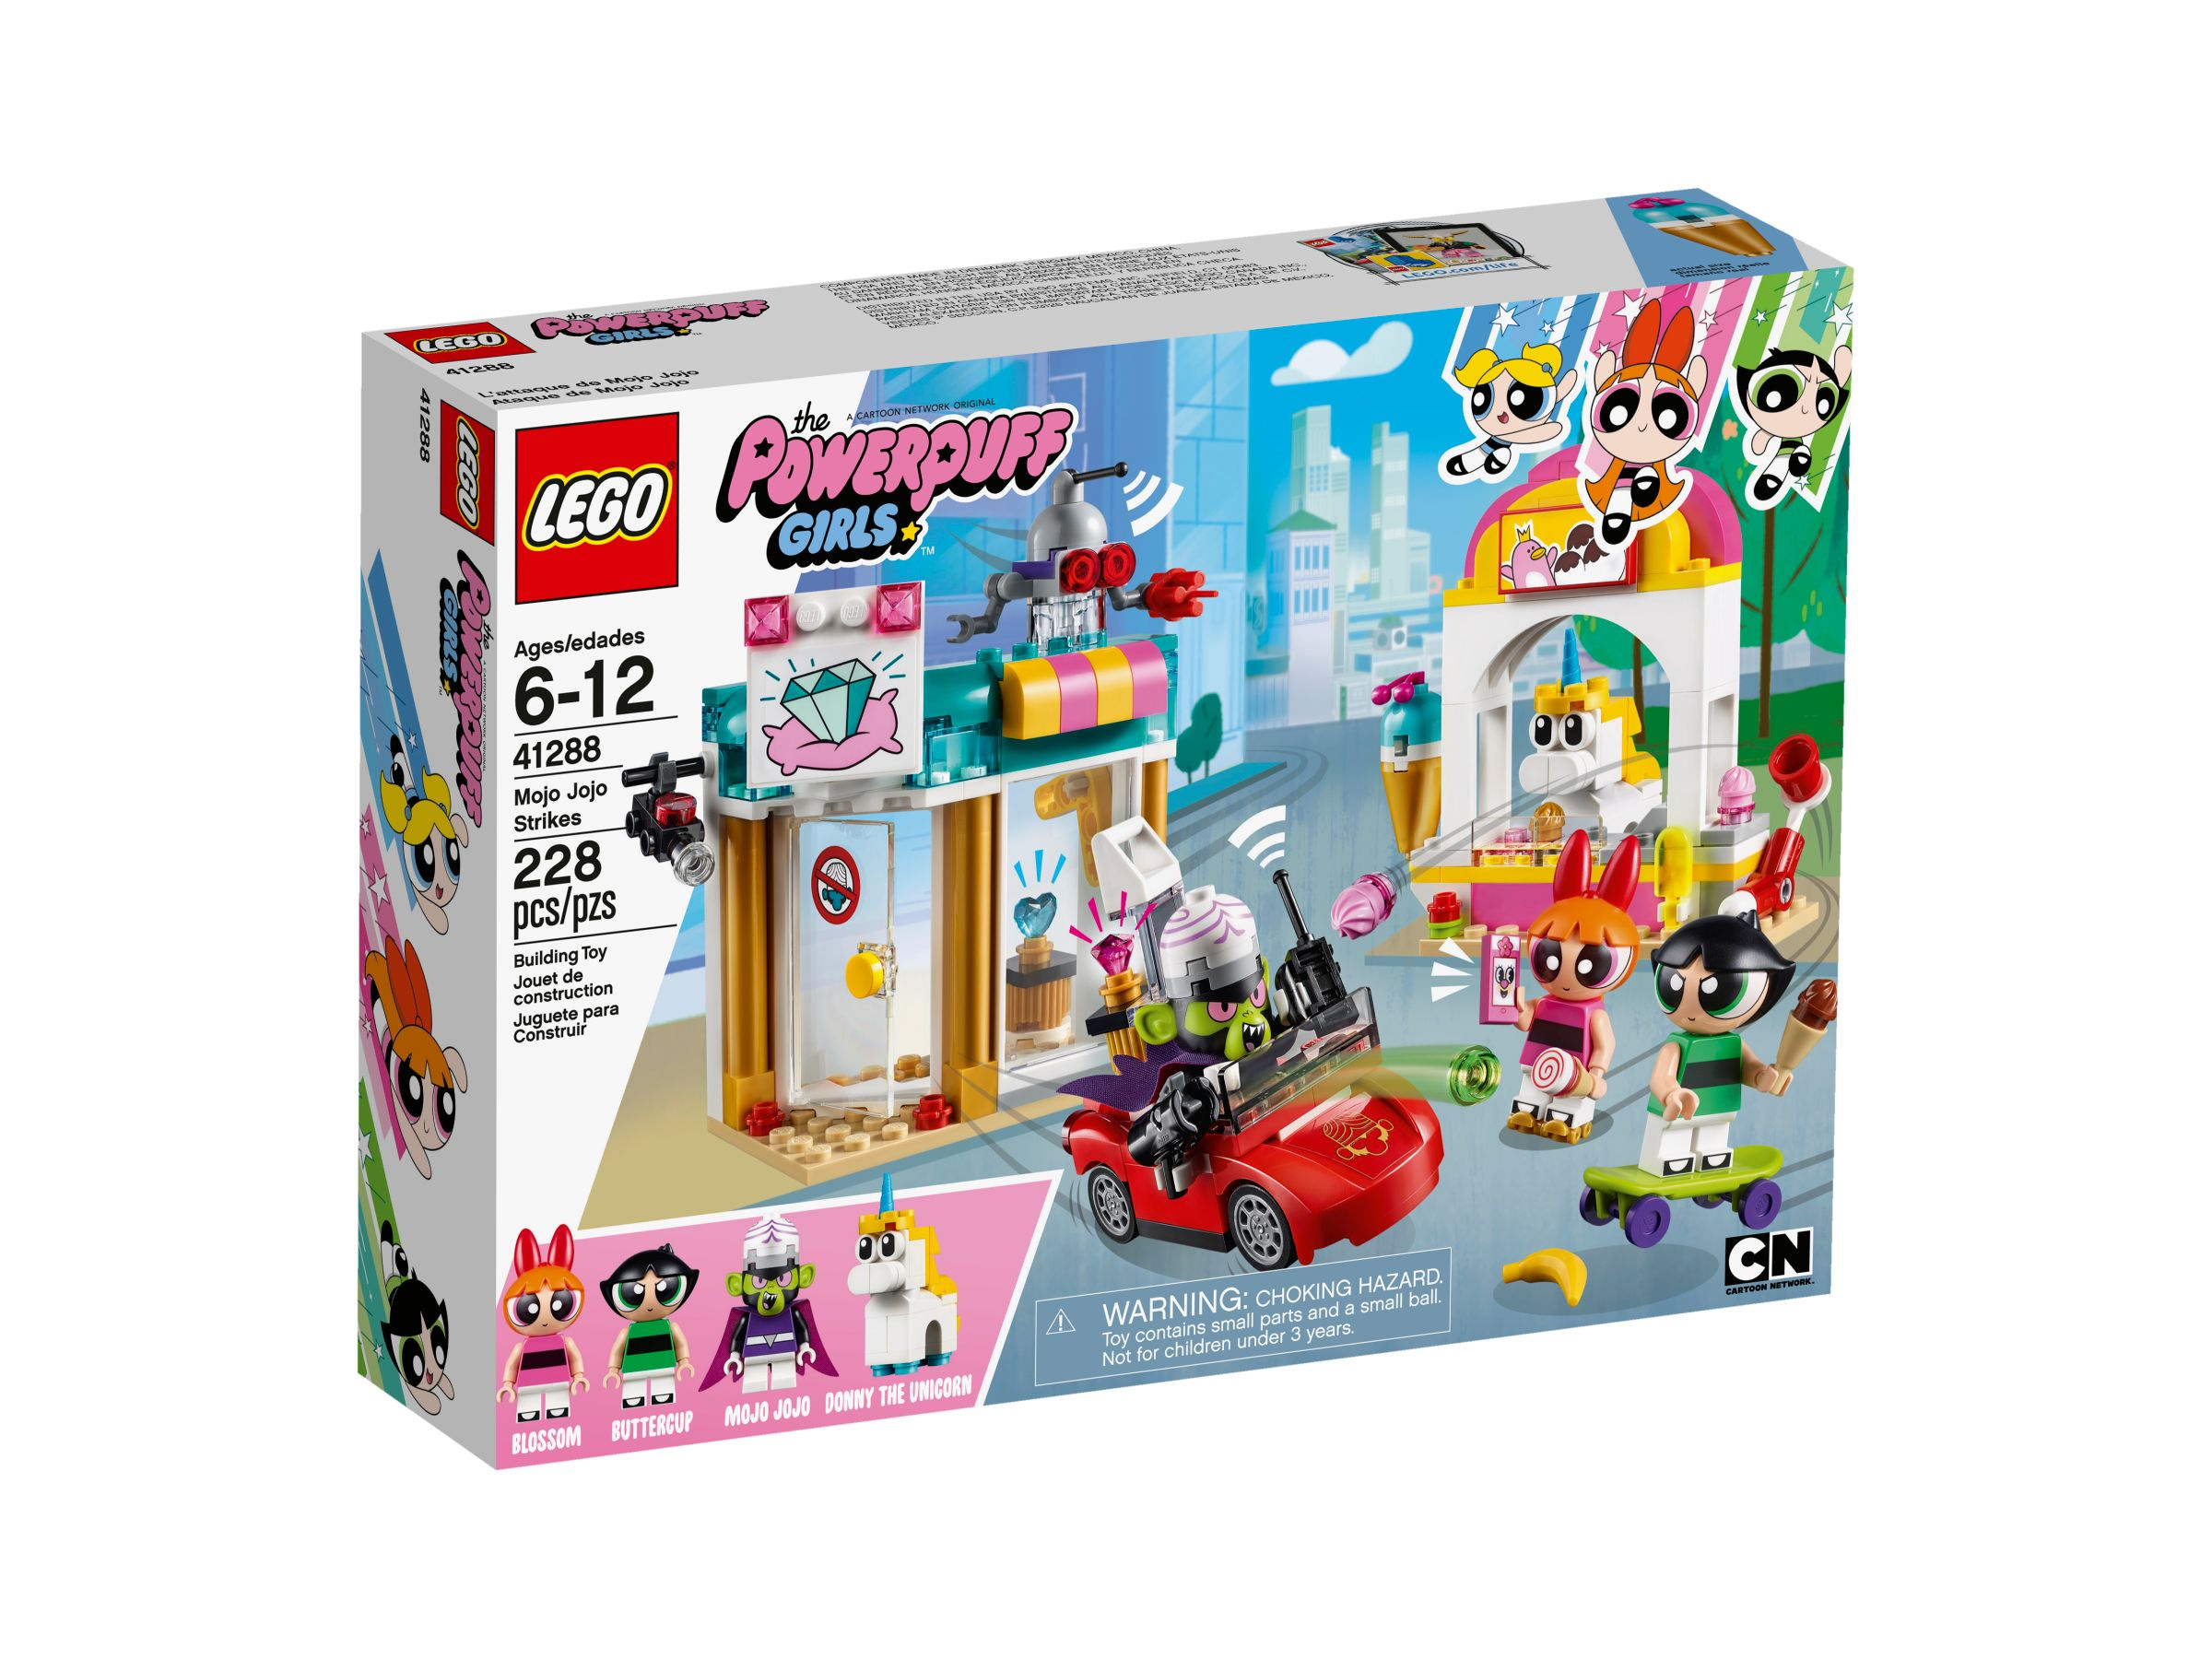 LEGO The Powerpuff Girls 41288 Angriff von Mojo Jojo LEGO_41288_alt1.jpg